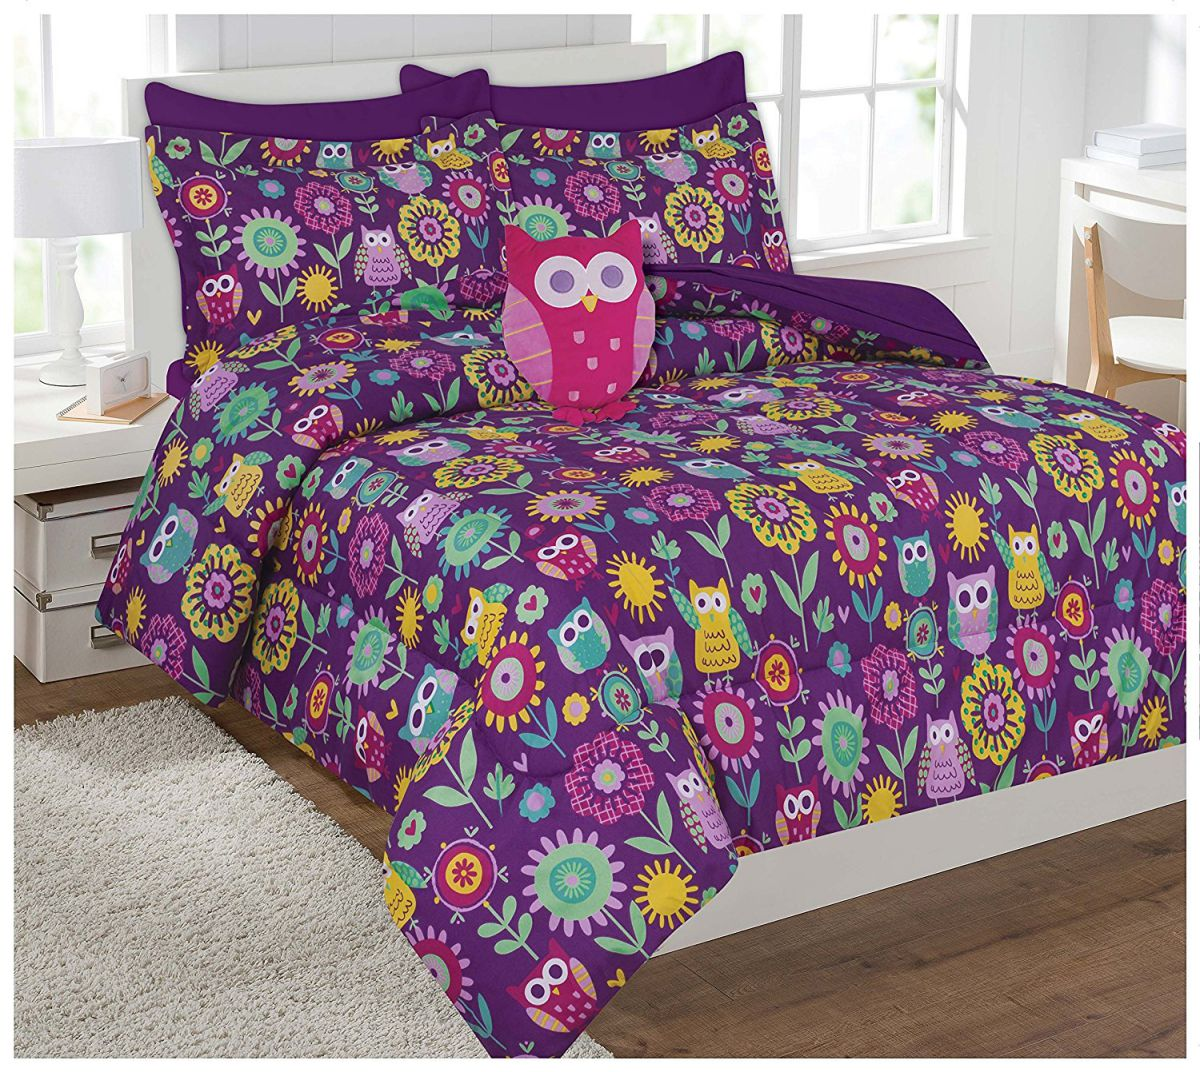 Full Size 8 Pieces Reversible Printed Owl Microfiber Kids Bedding